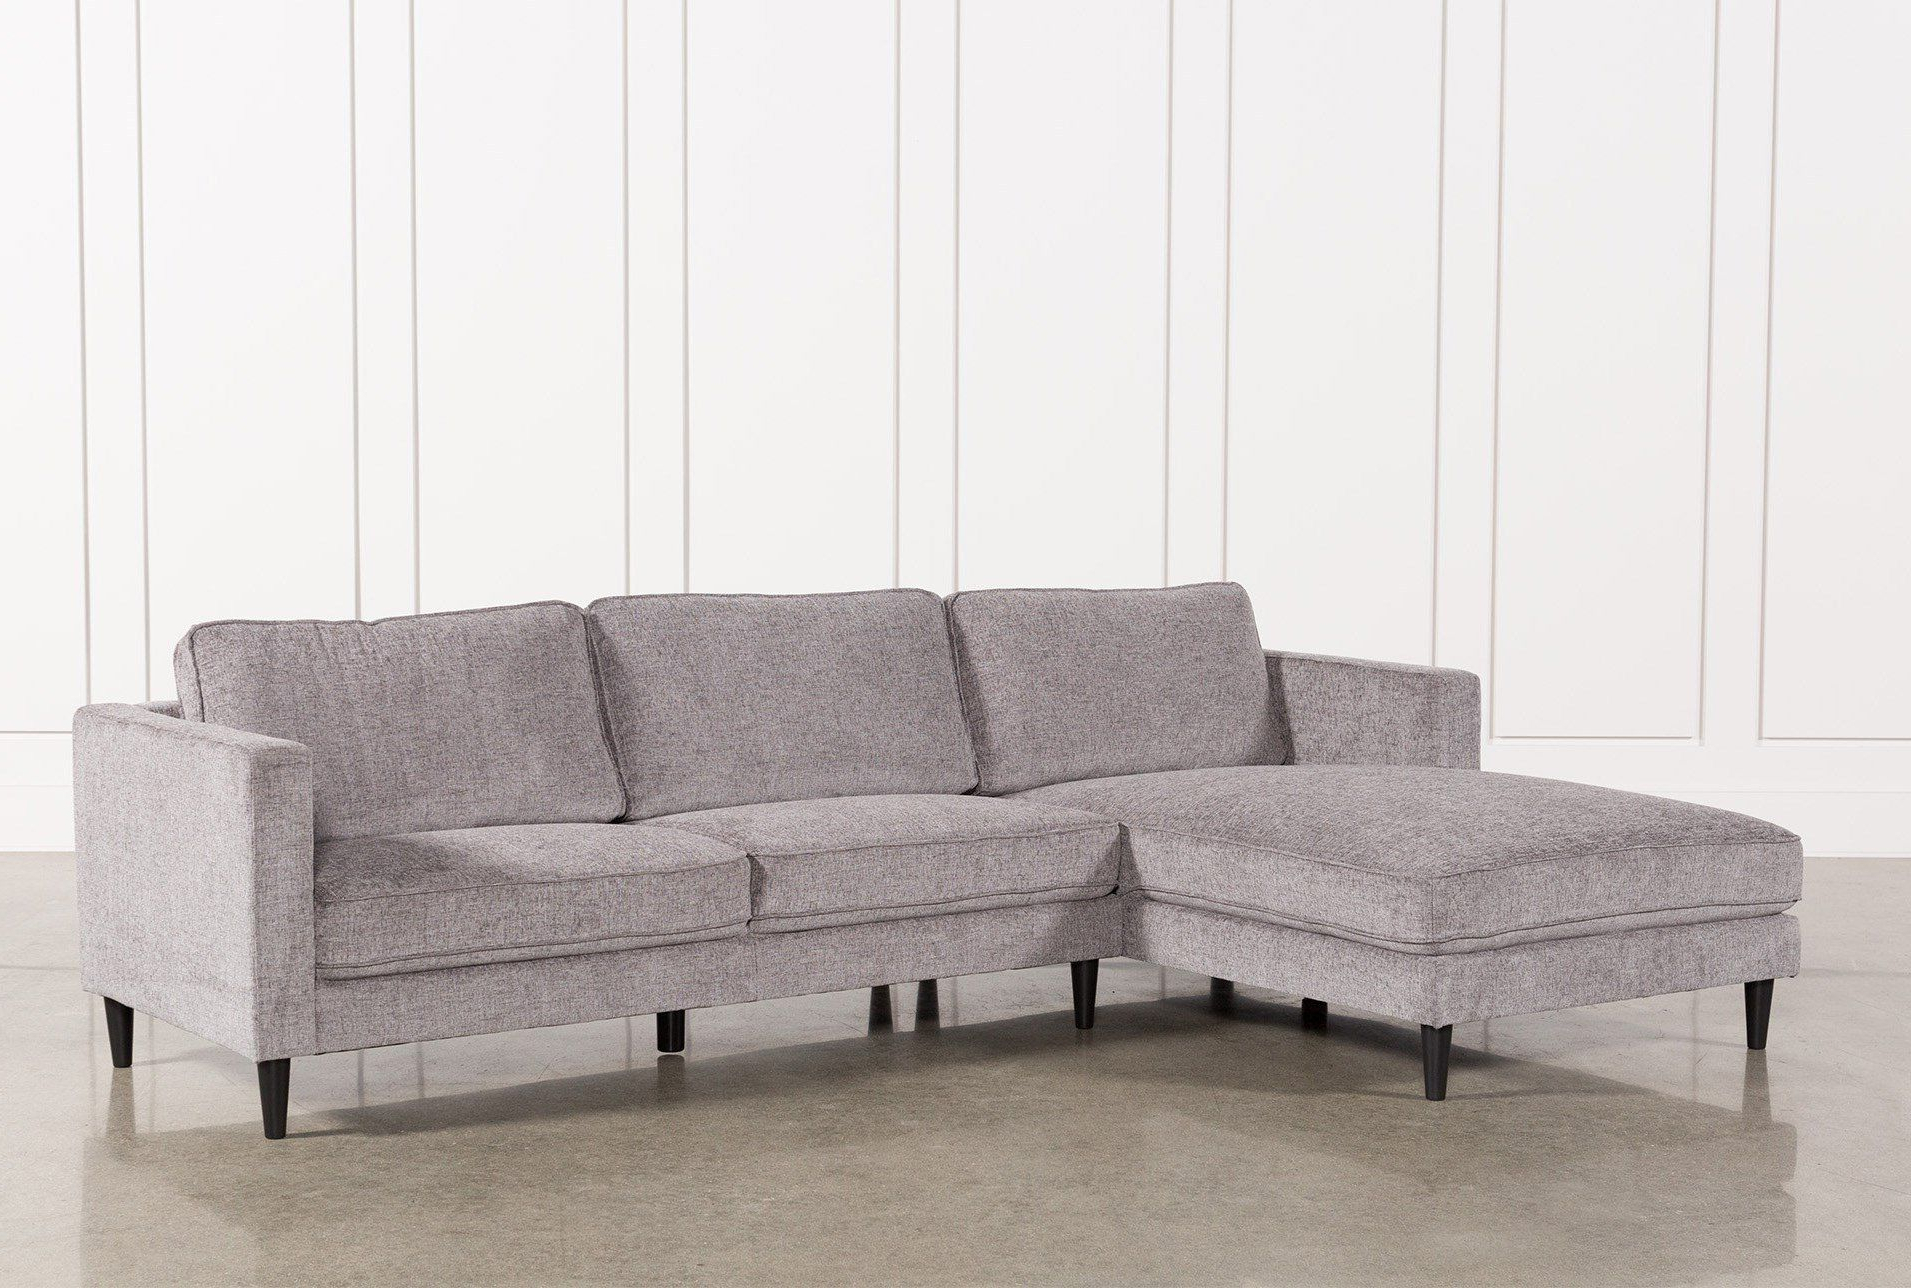 Pinterest In Recent Avery 2 Piece Sectionals With Laf Armless Chaise (View 16 of 20)